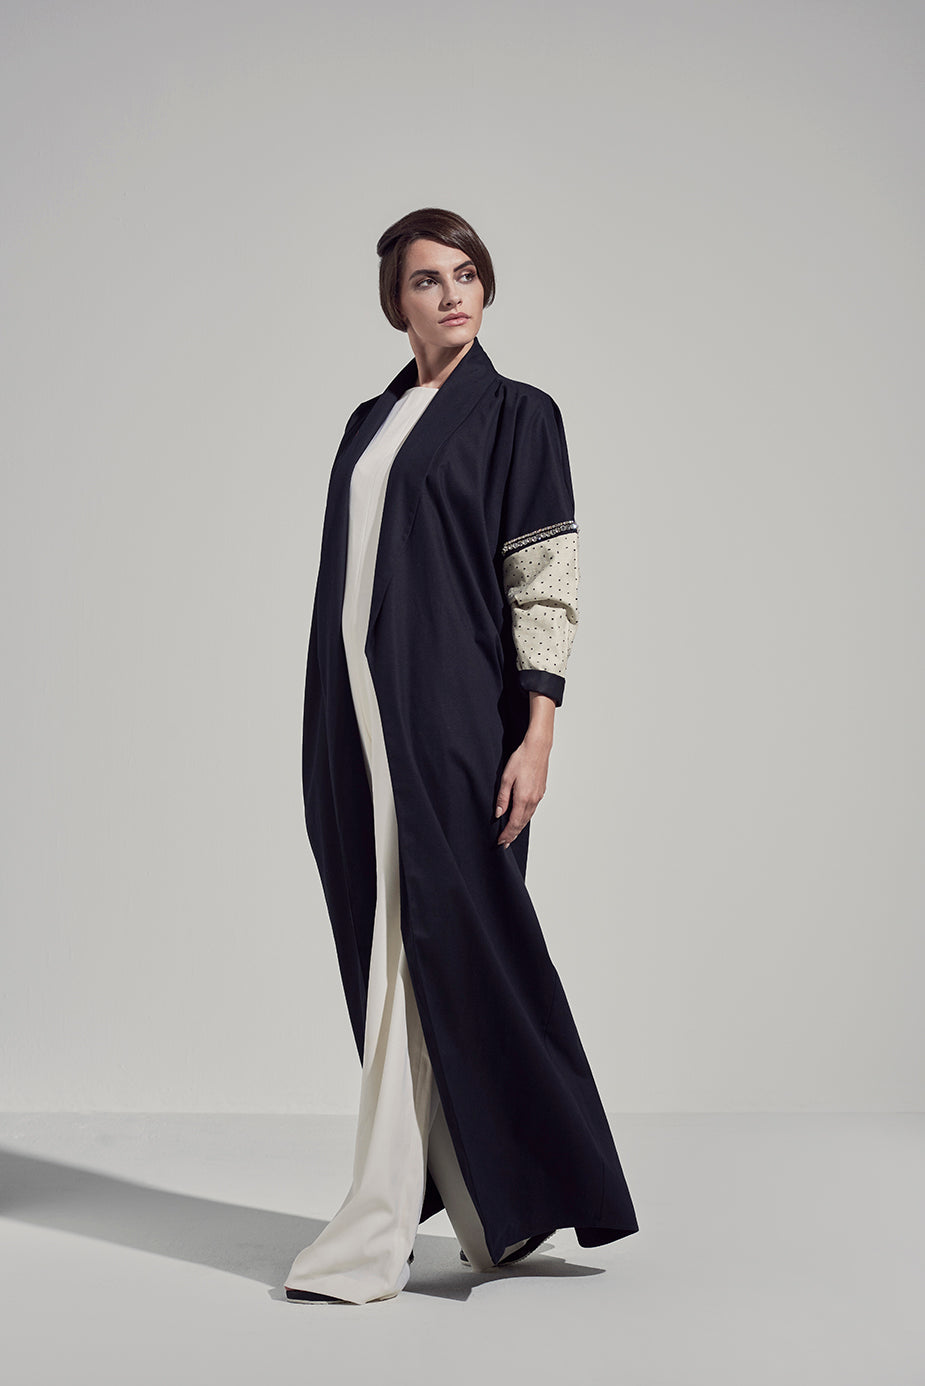 The Whimsical Abaya